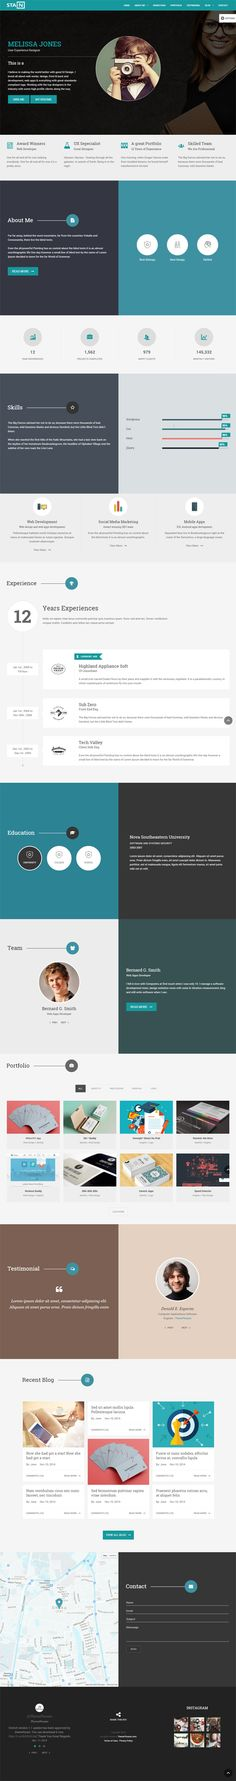 Most popular admin template for angularjs static html5jquery responsive website templates desktop tablet mobile optimize designed with unique pages and builders templates are perfect for corporate maxwellsz